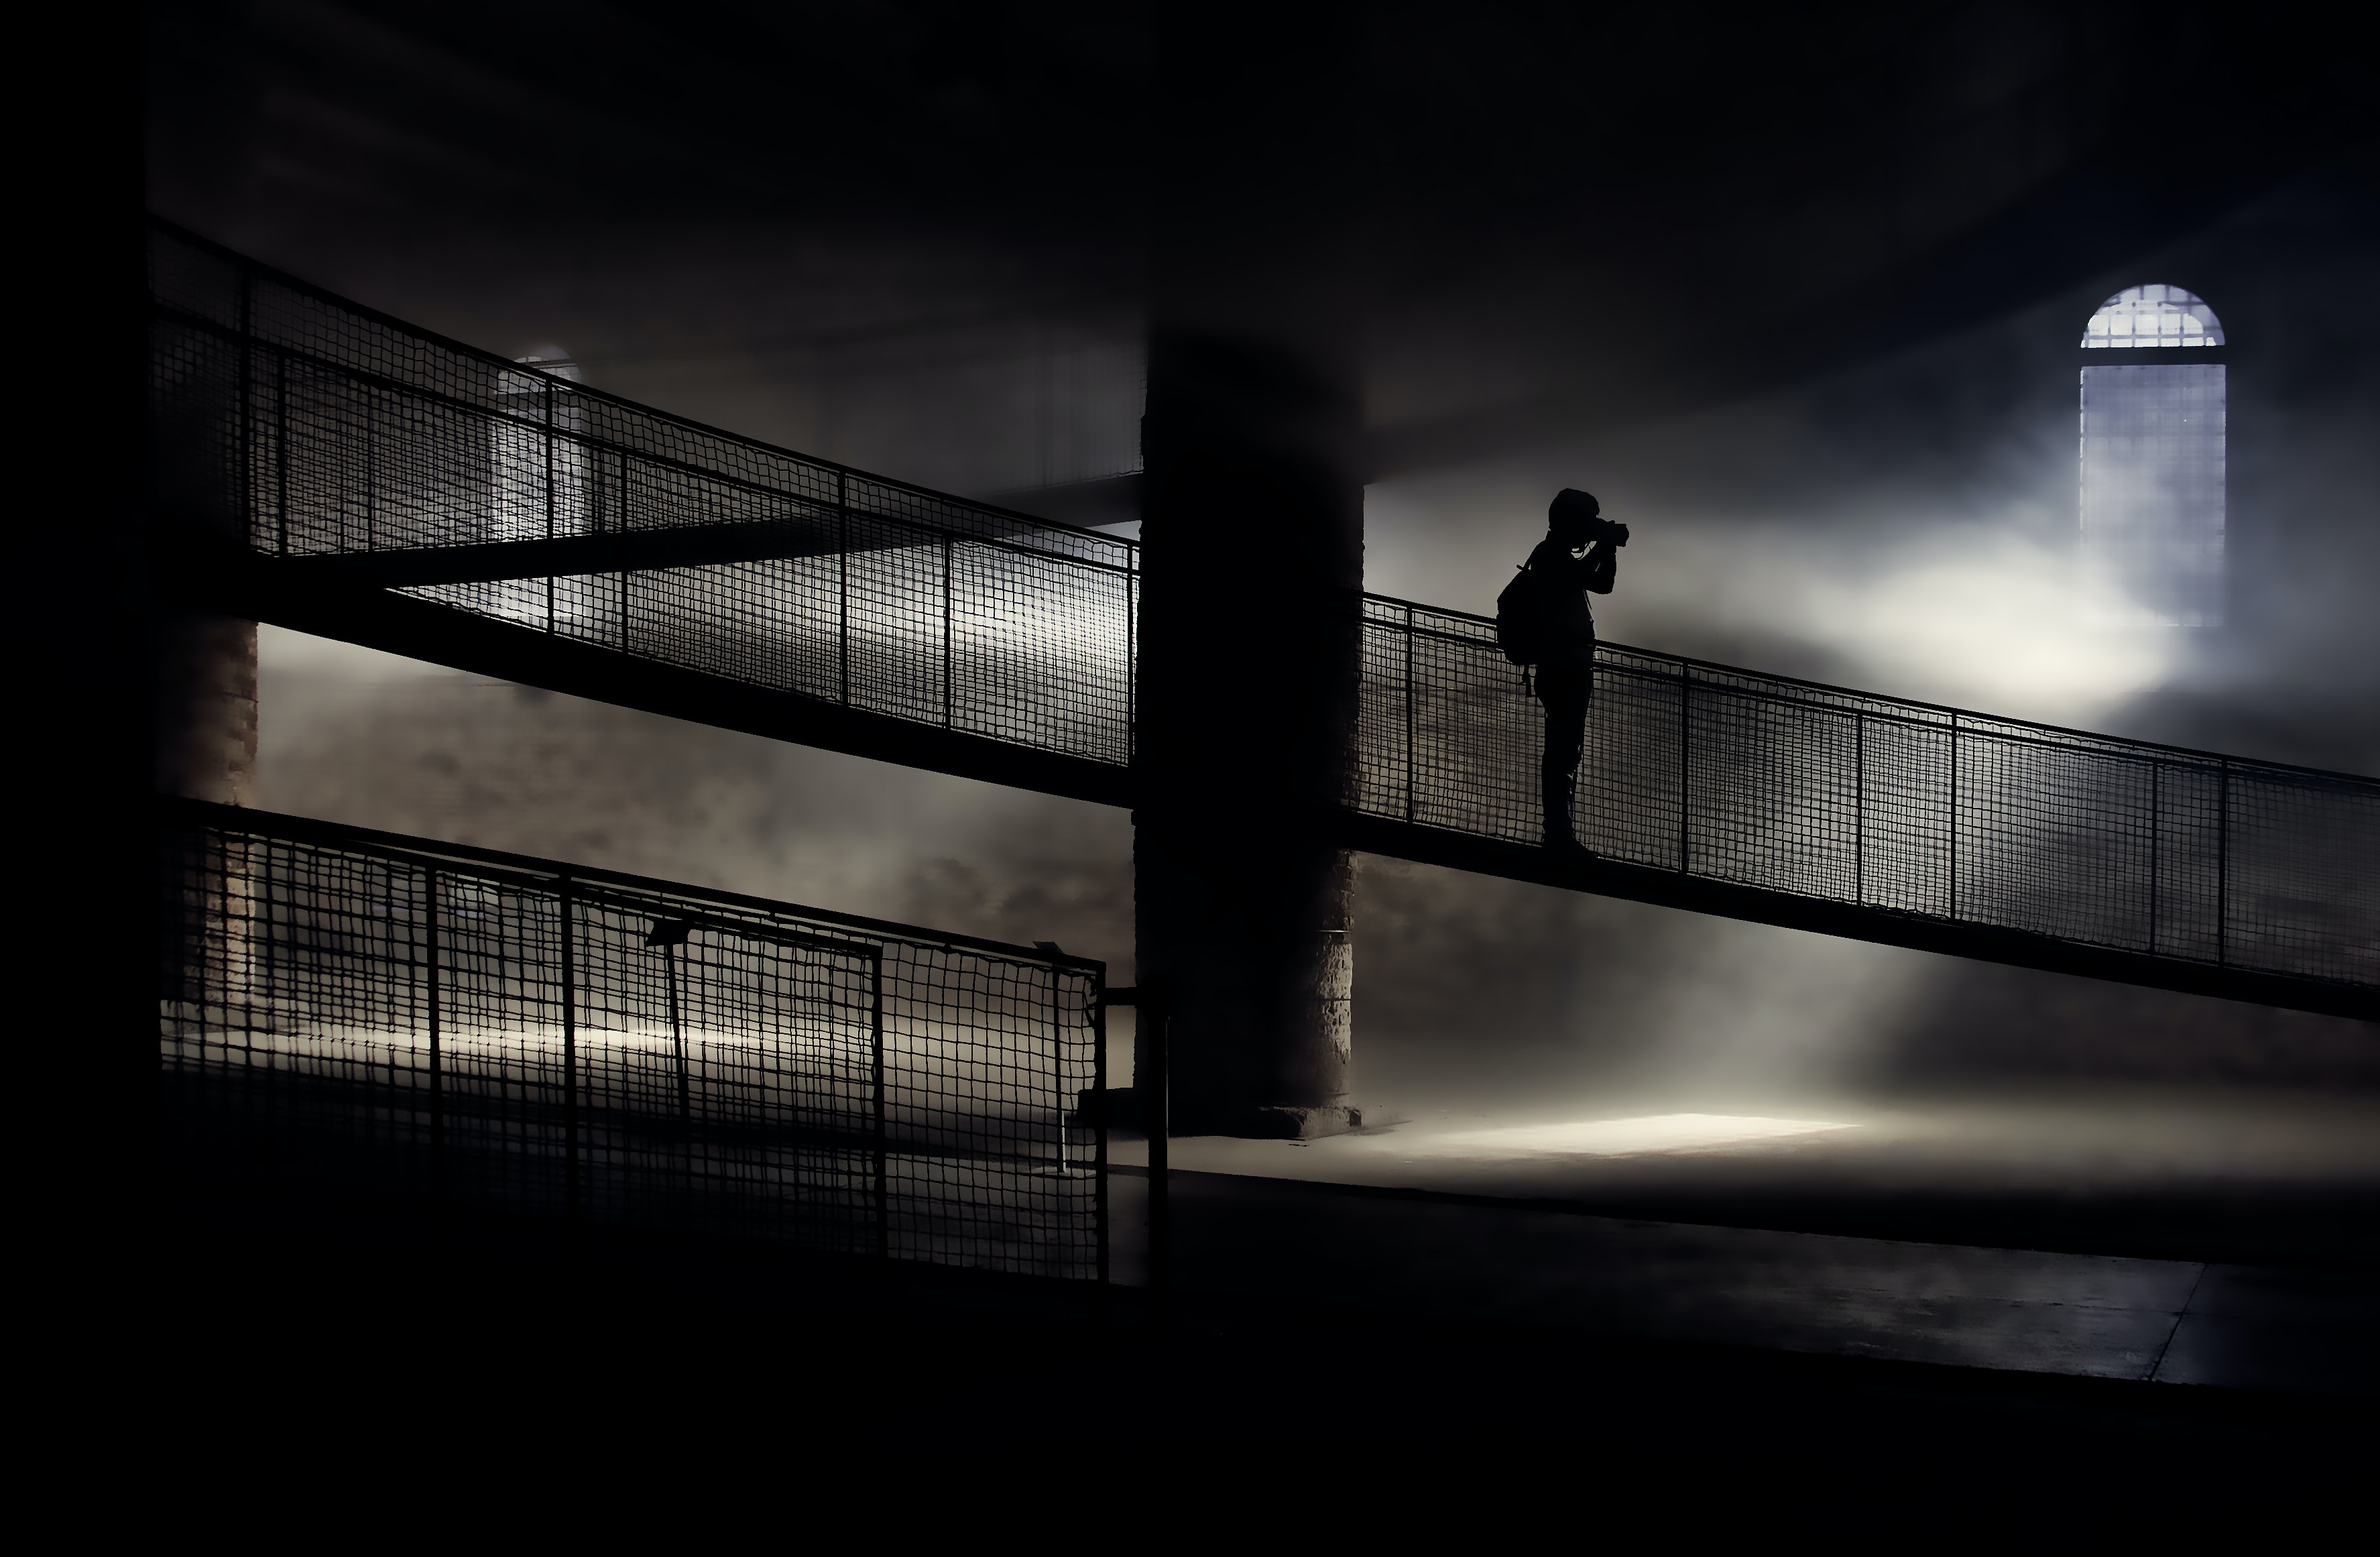 silhouette of person standing on bridge while taking photo